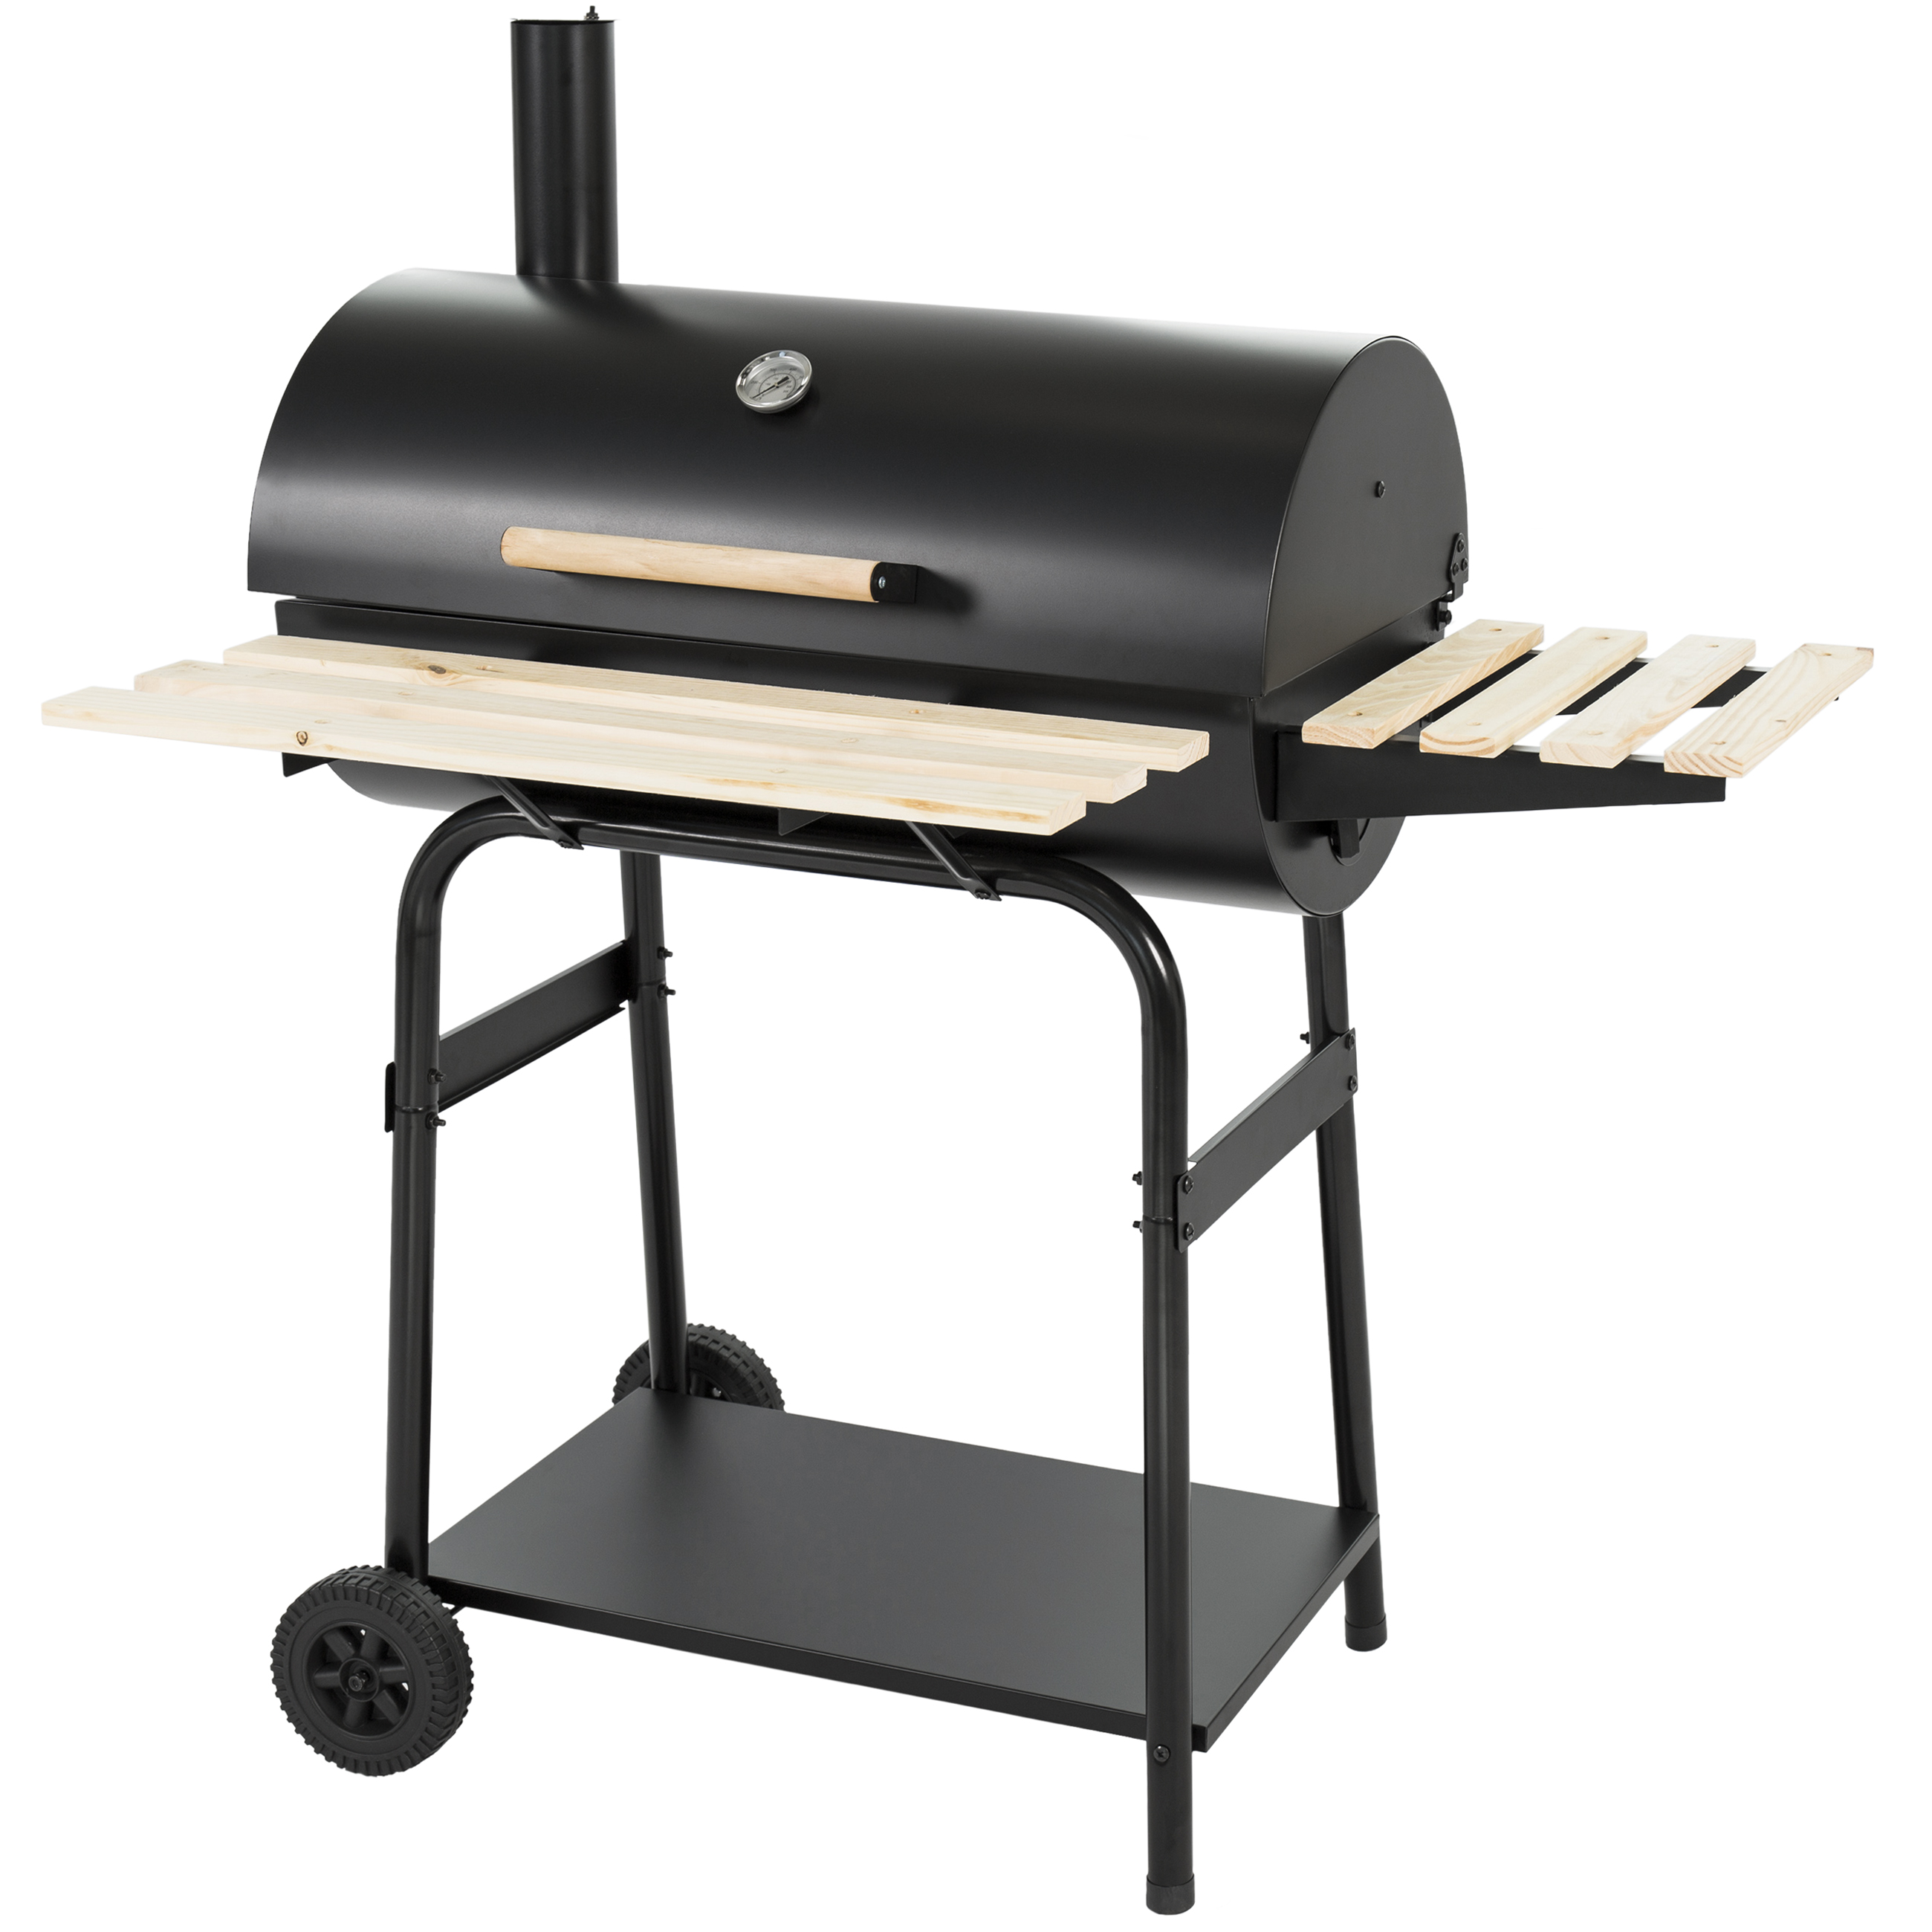 Best Choice Products BBQ Grill Charcoal Barbecue Pit Patio Backyard Home  Smoker   Walmart.com